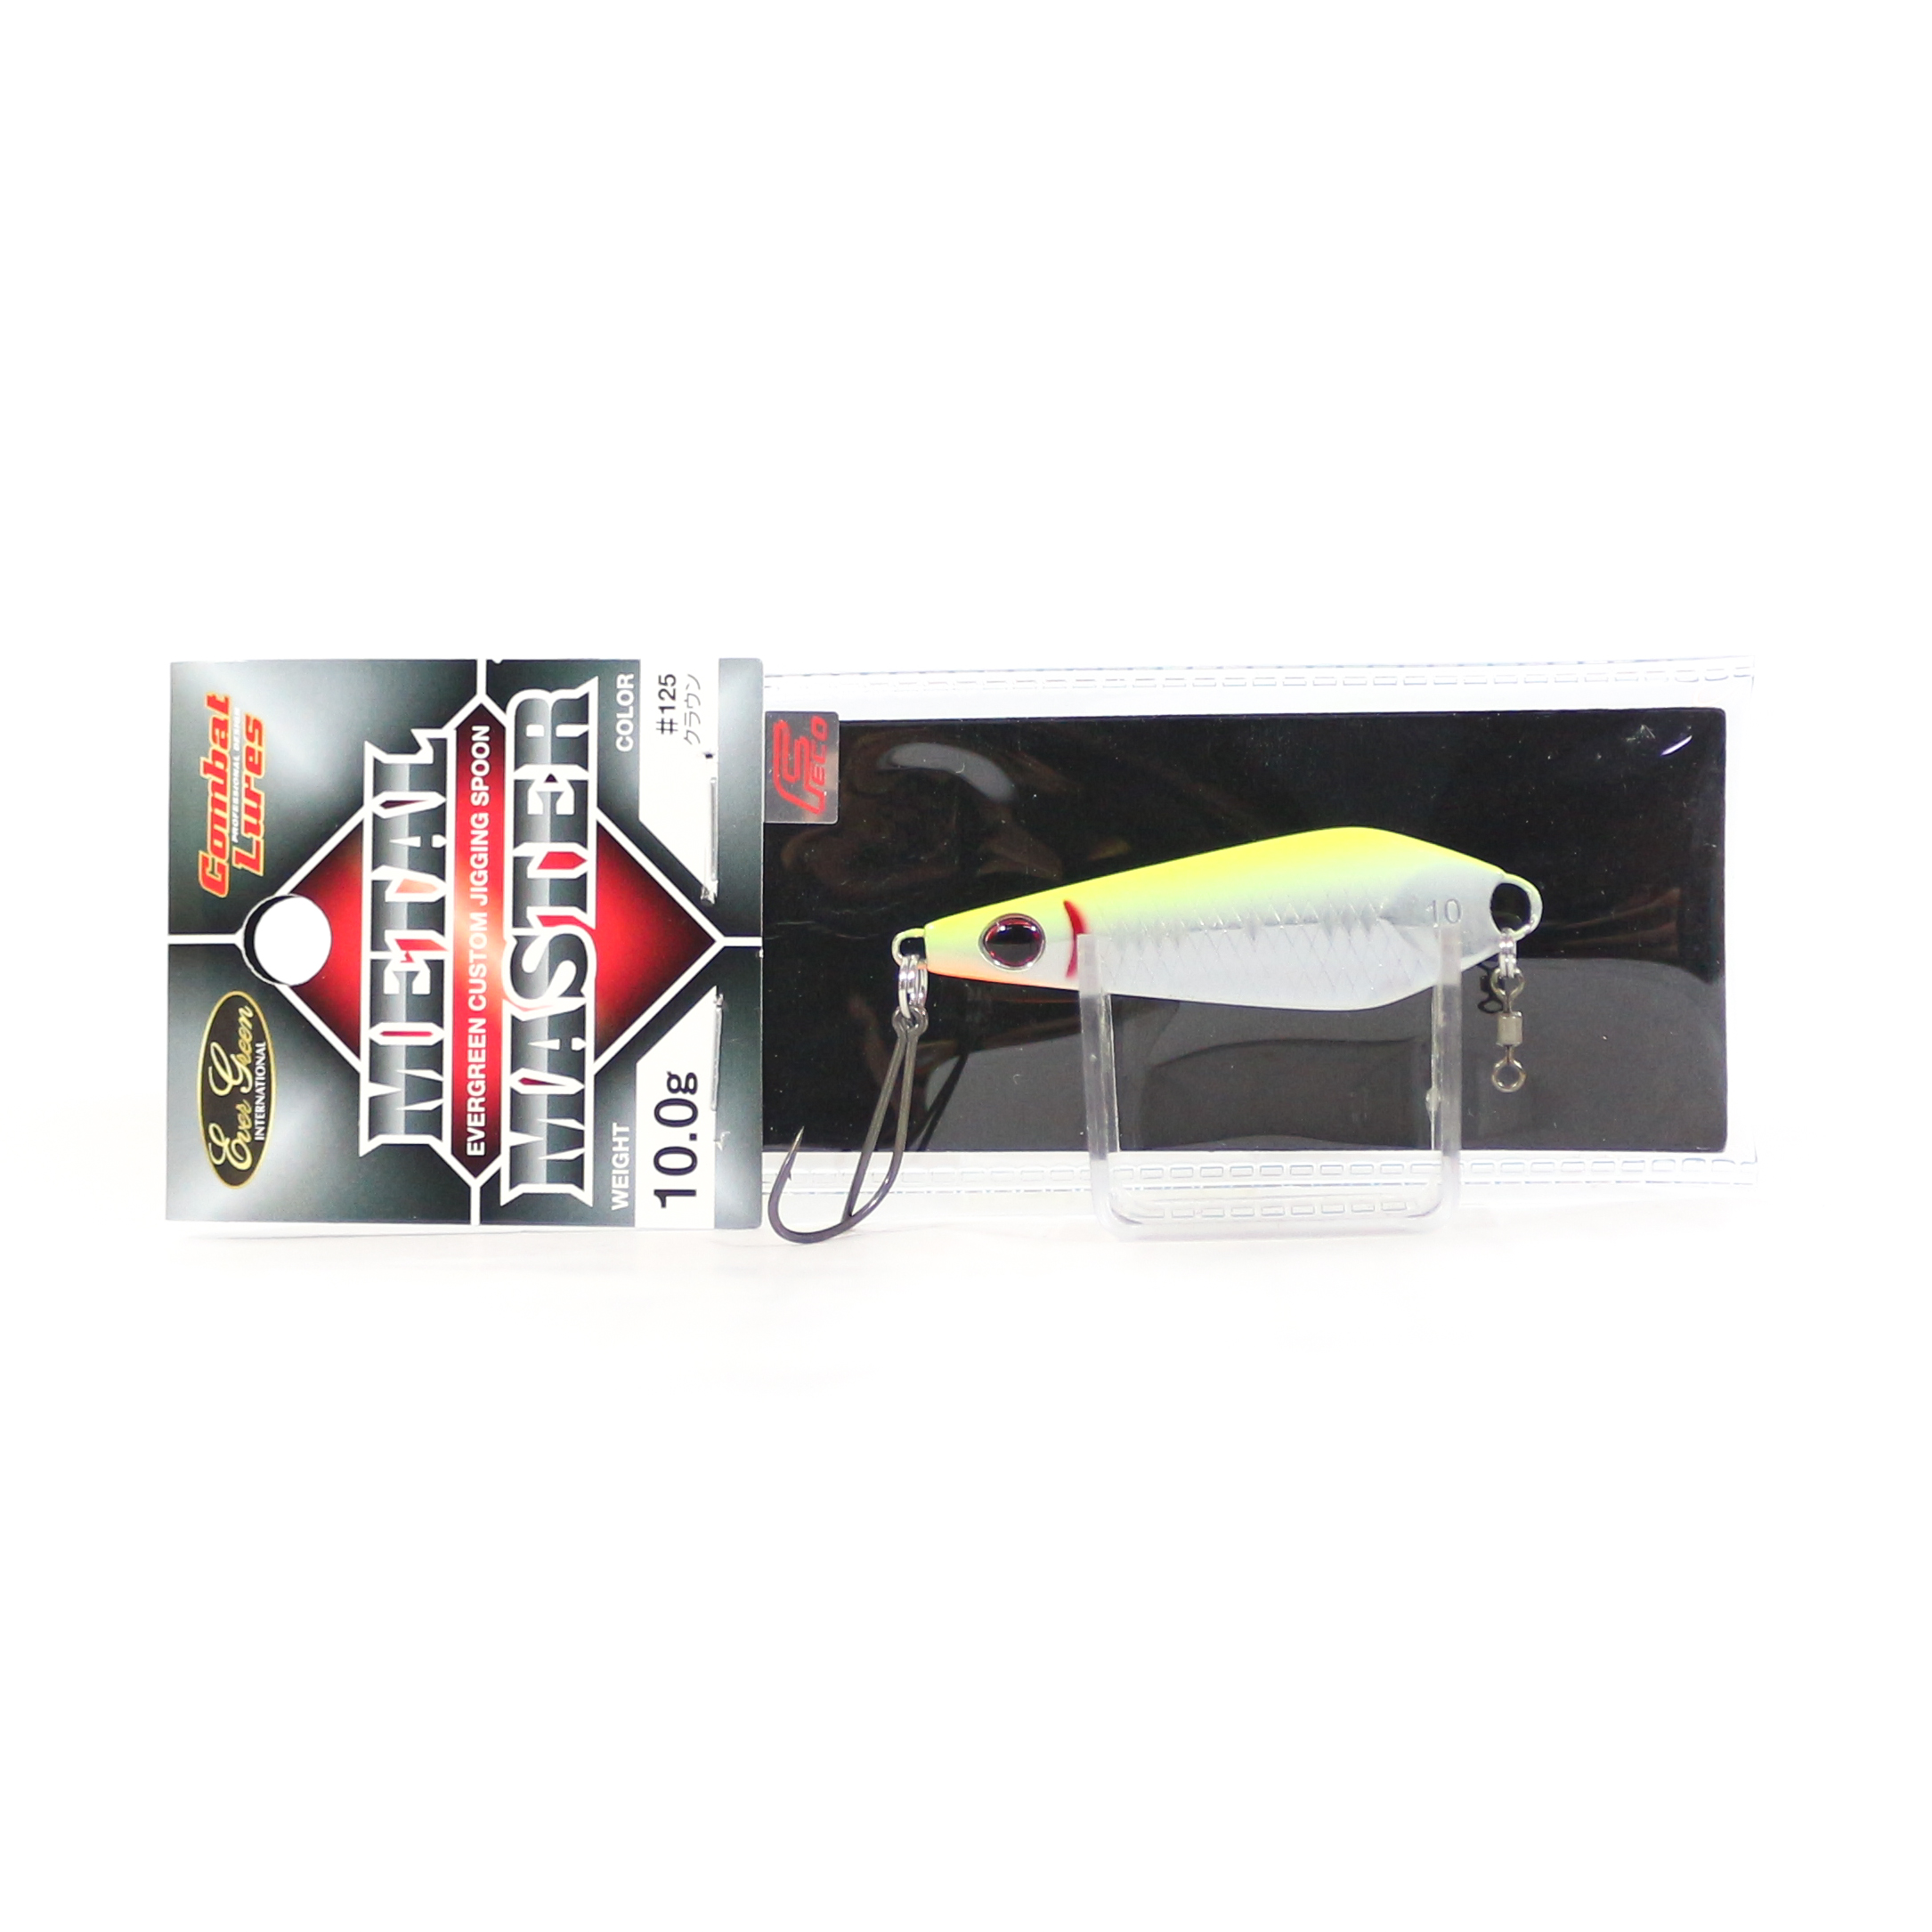 Evergreen Metal Master Custom Jigging Spoon 10 grams 263 (6024)